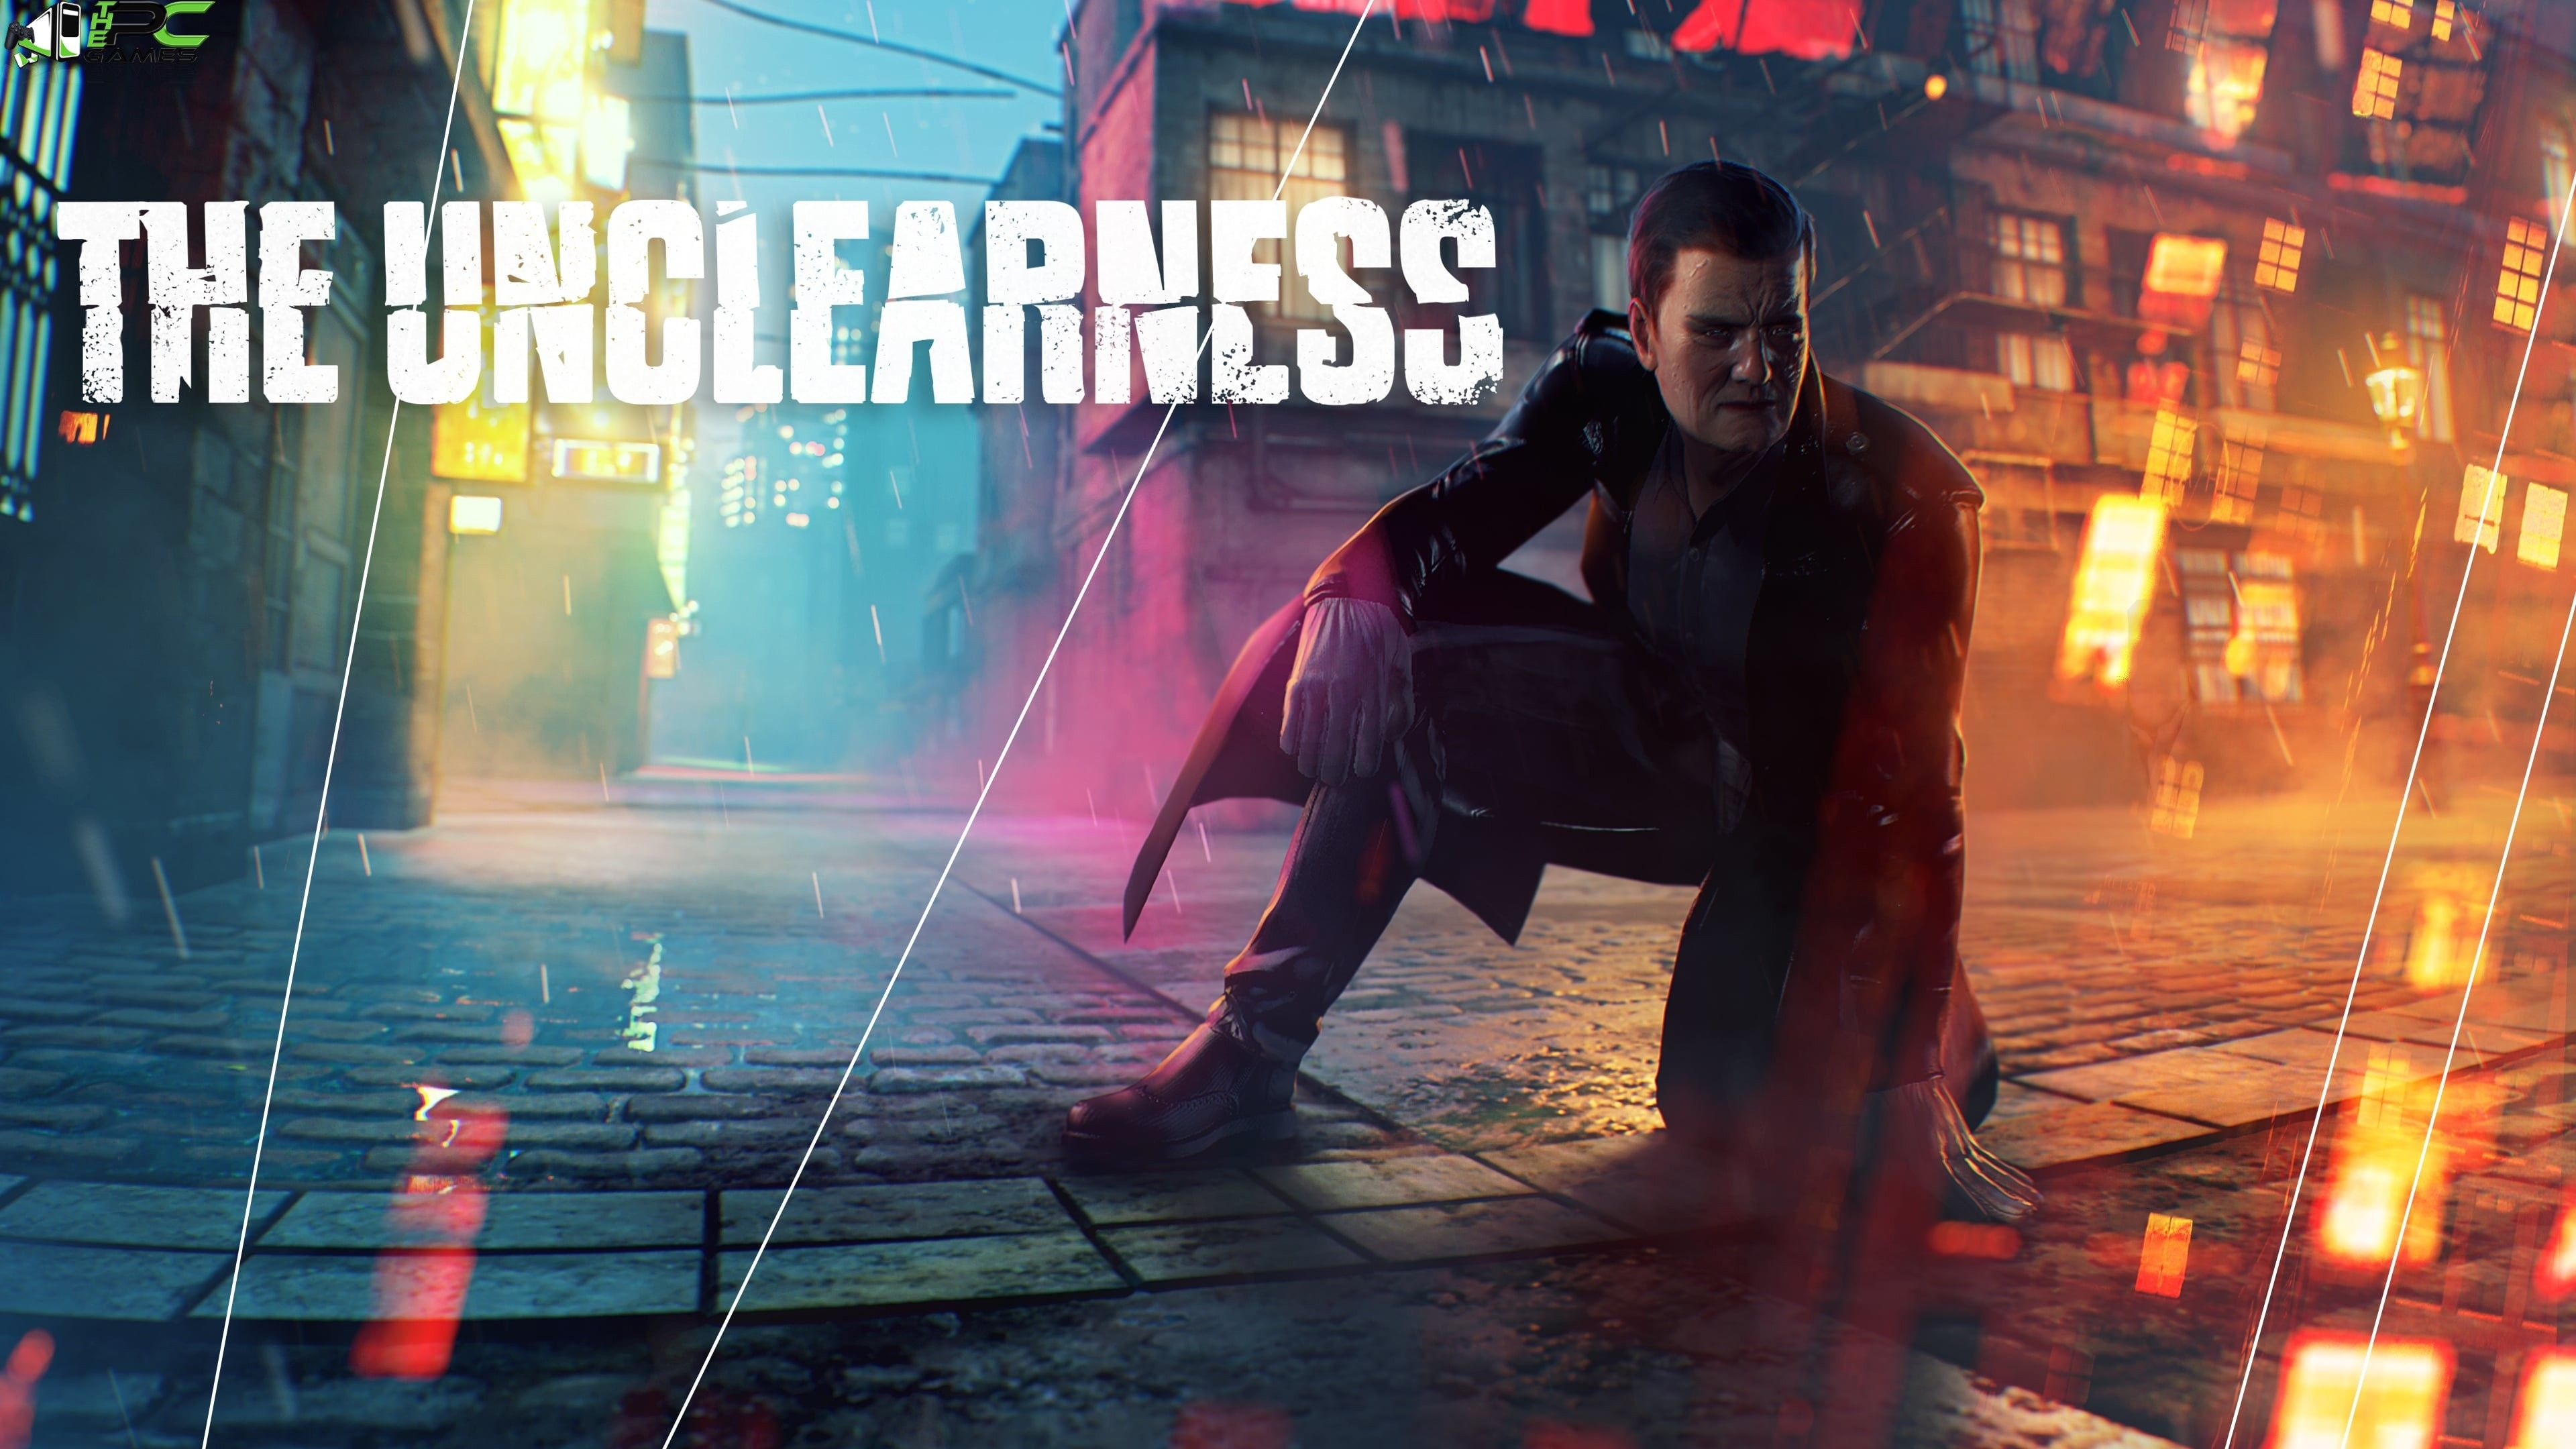 The Unclearness PC Game Free Download Gaming pc, Free